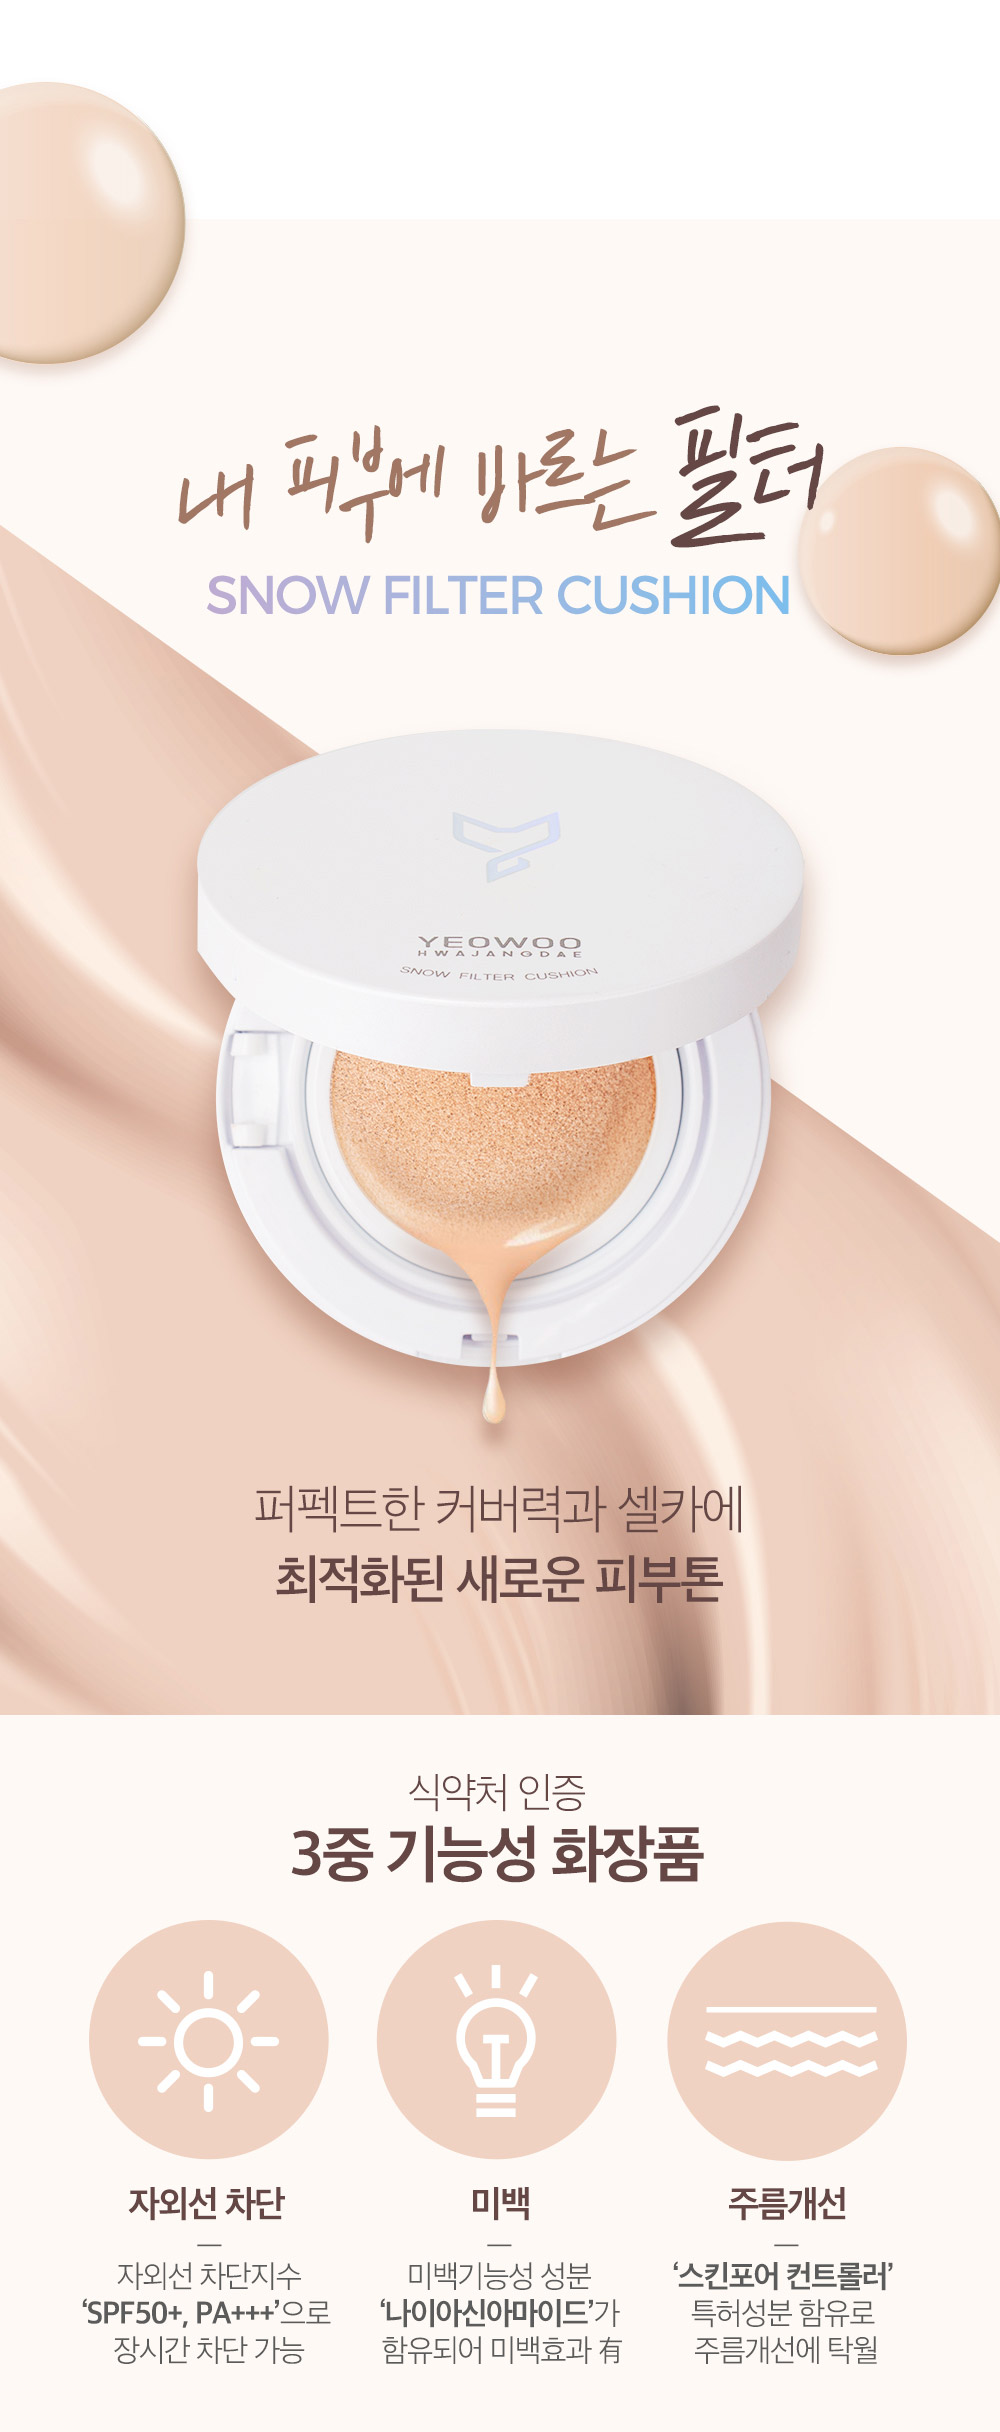 yeowoo-hwajangdae-snow-filter-cushion-15g-korean-cosmetic1.jpg